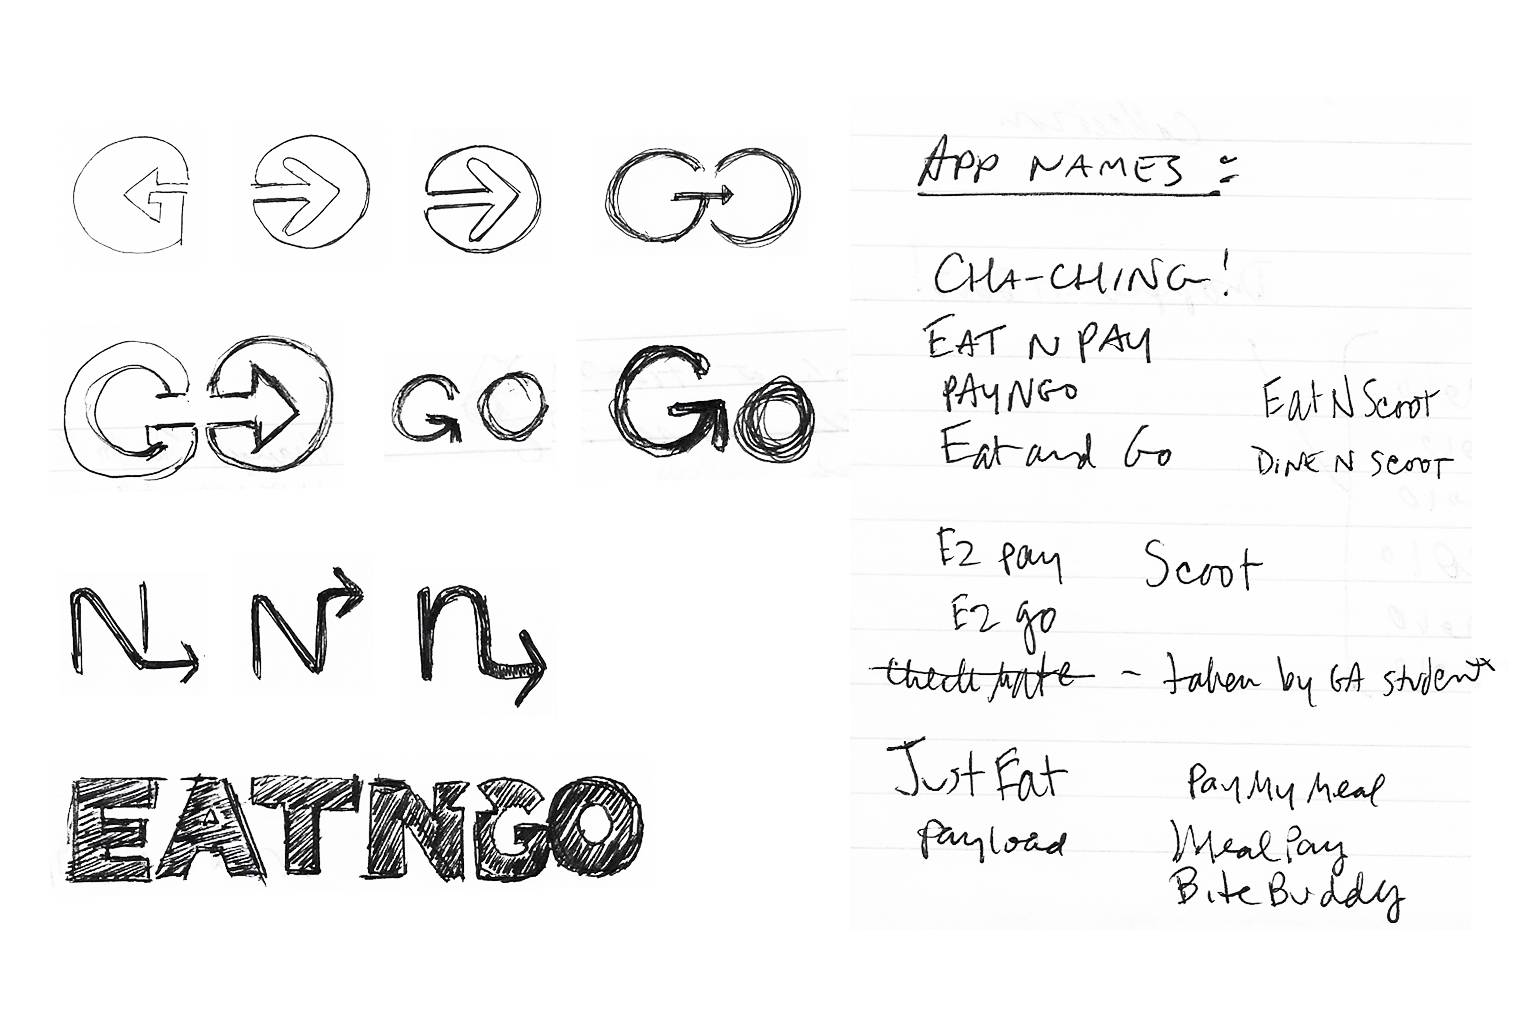 App name and logo sketches